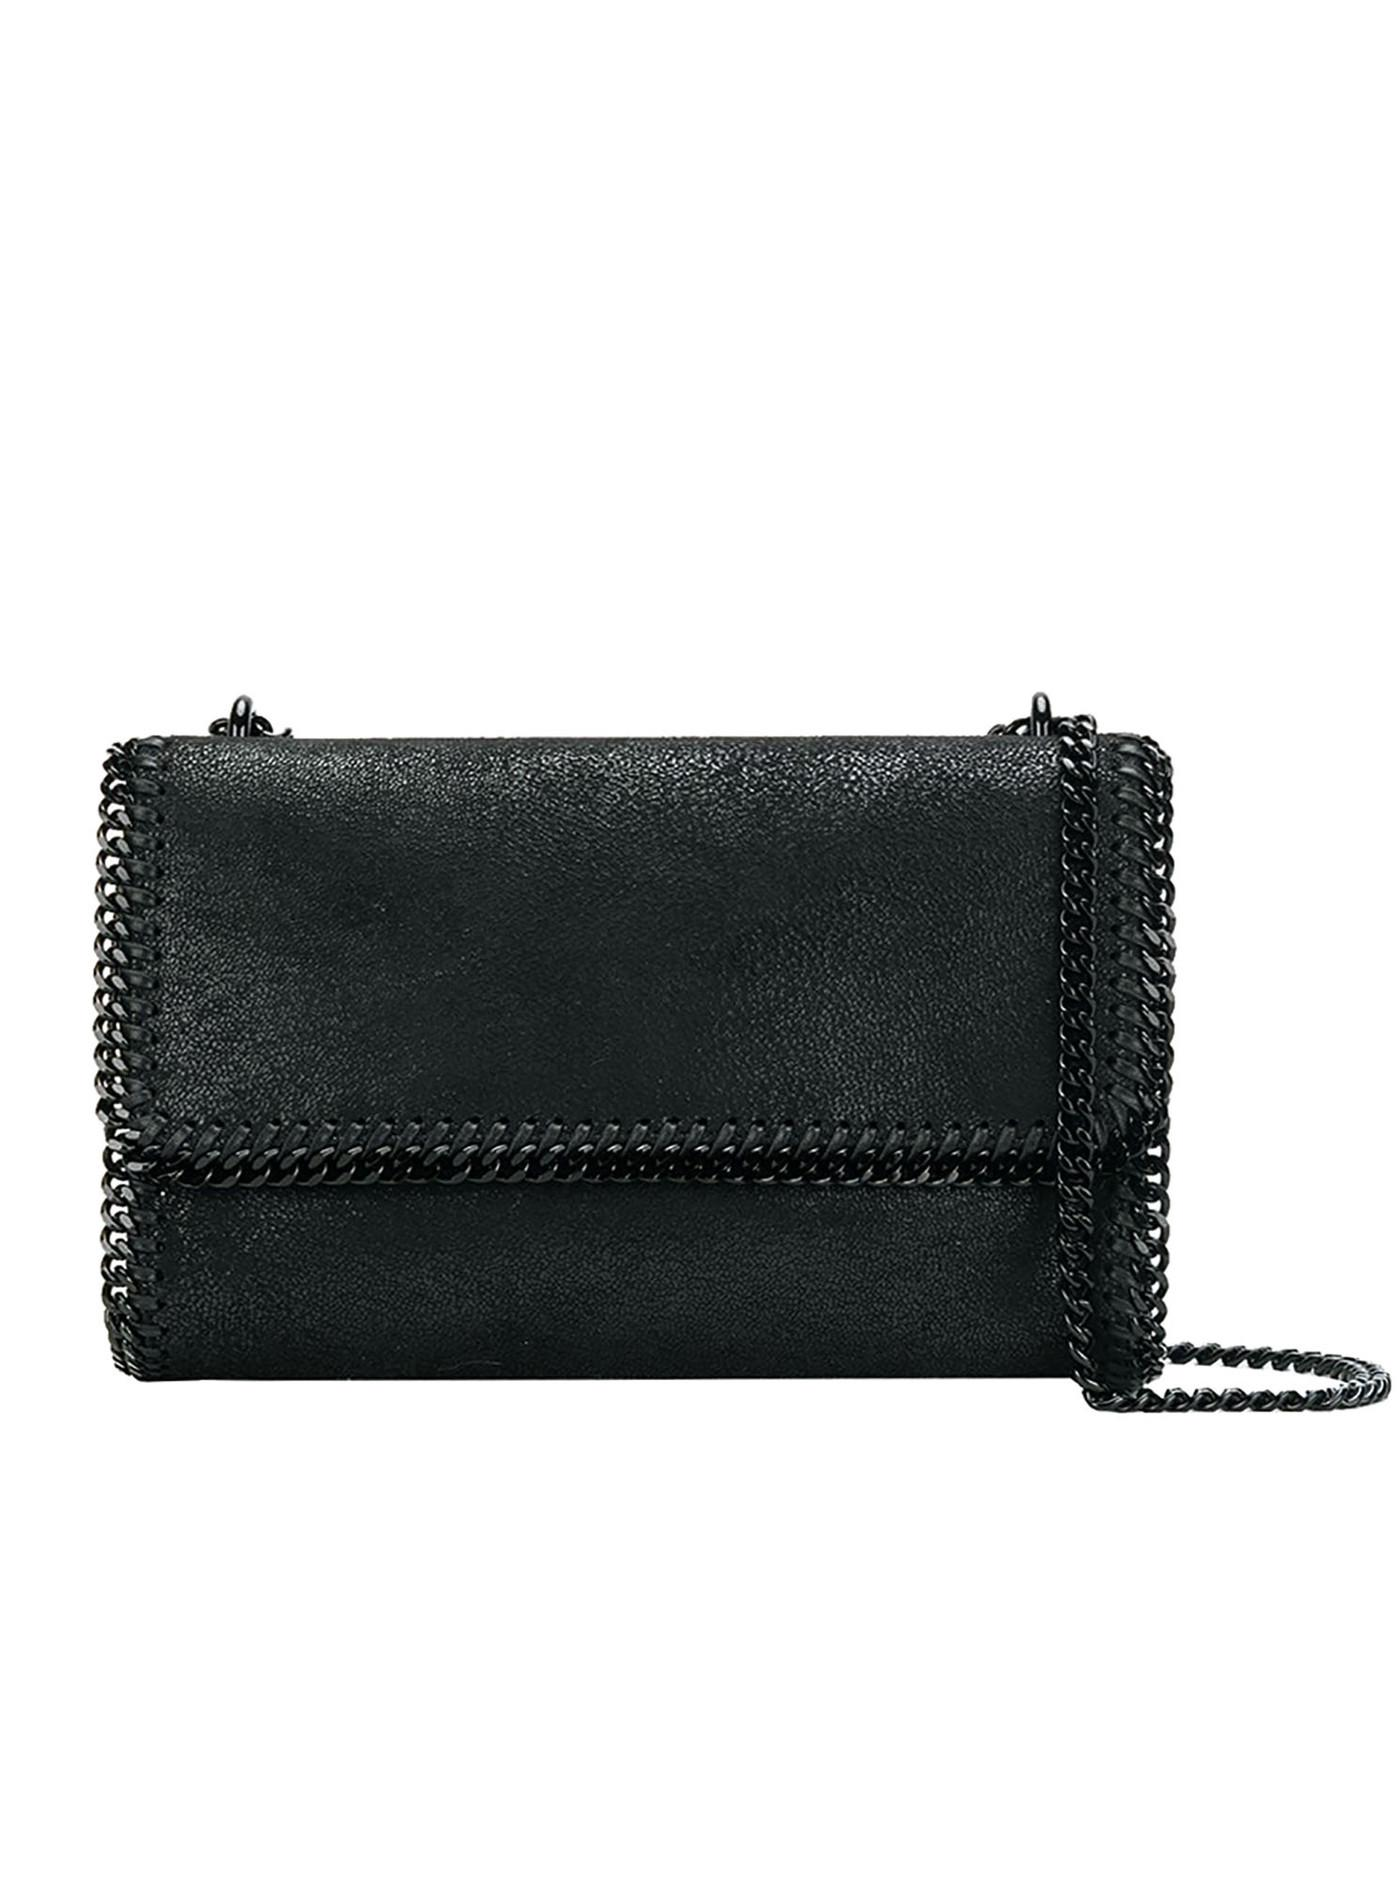 73a20952d99c Stella Mccartney Falabella Shaggy Deer Crossbody Bag in Black - Lyst